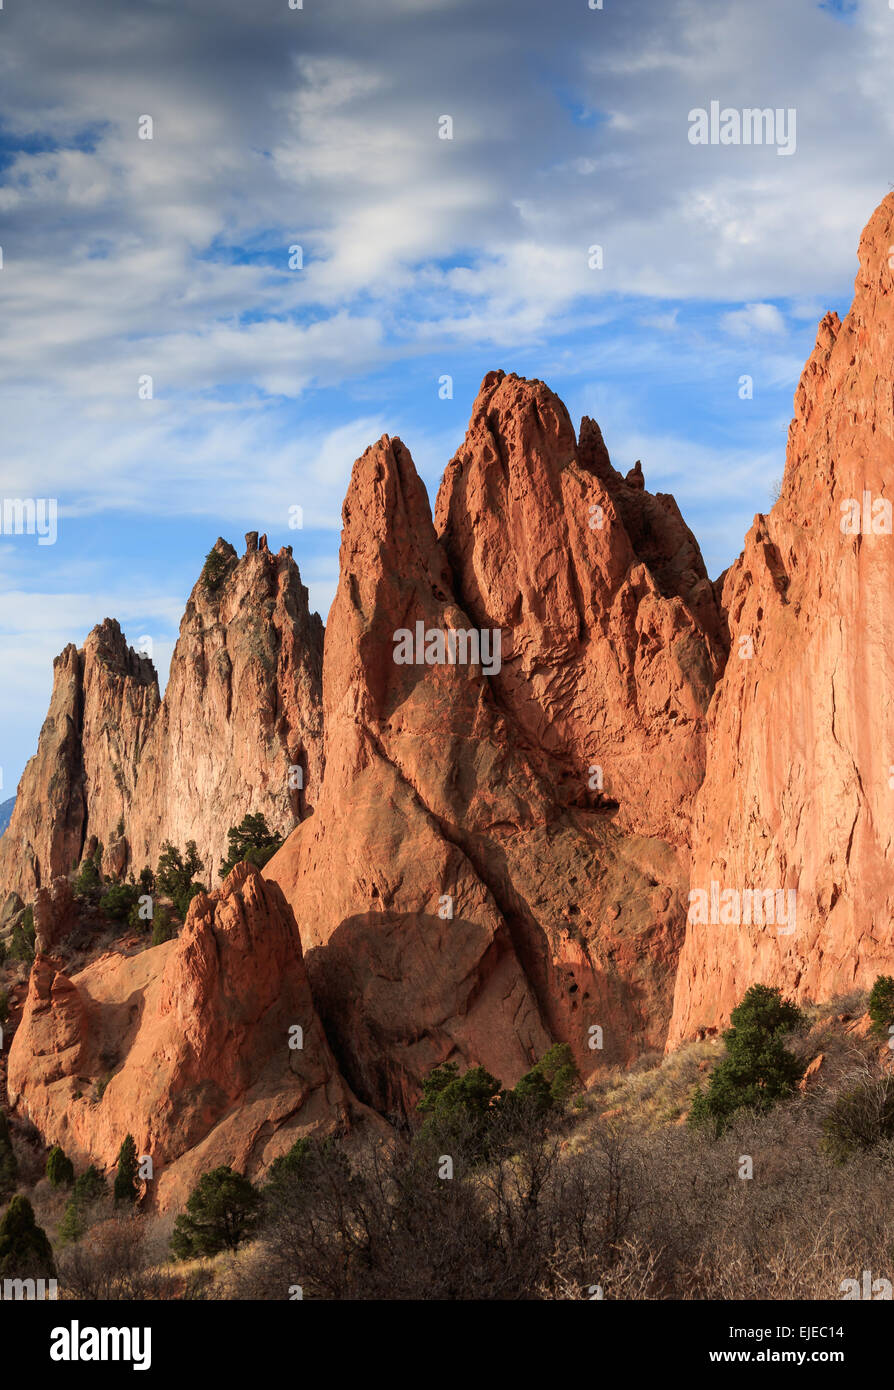 Rock formations in Garden of the Gods. This is a city park in Colorado Springs, CO. - Stock Image